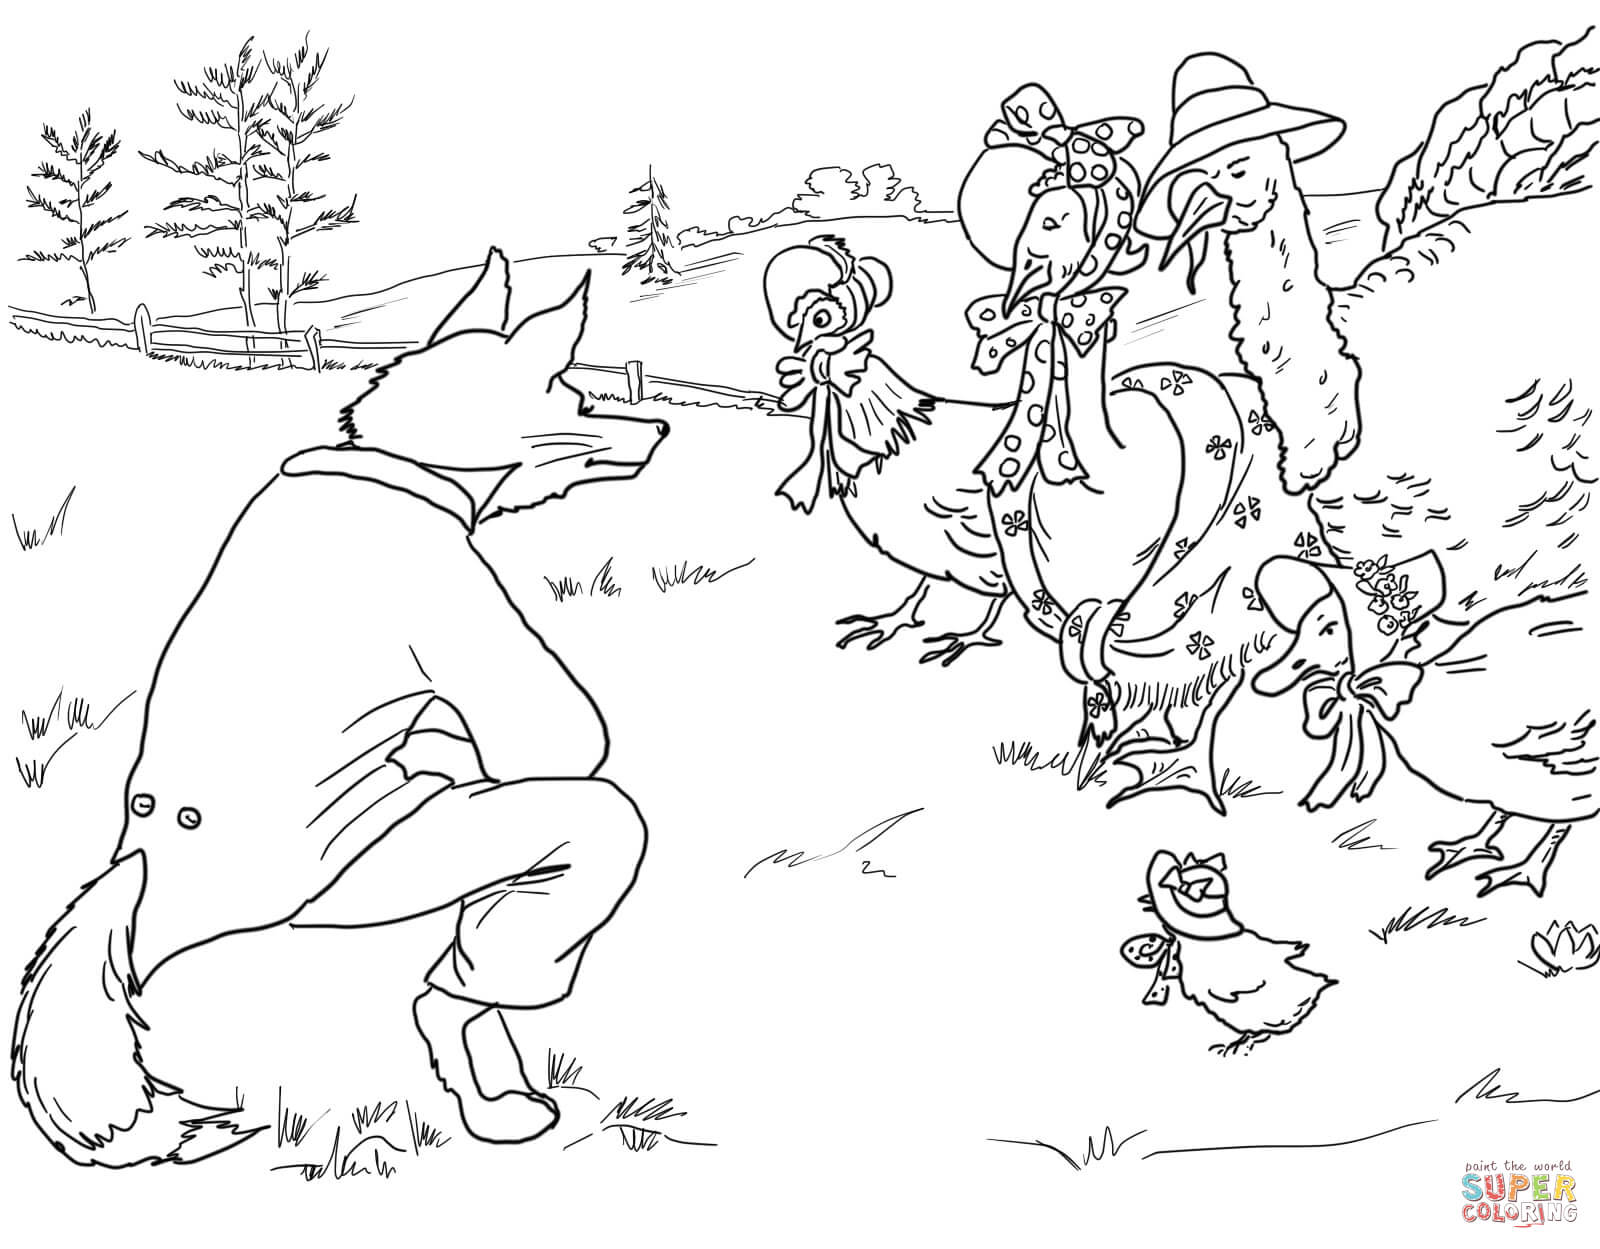 Birds and Fox from Henny Penny coloring page.